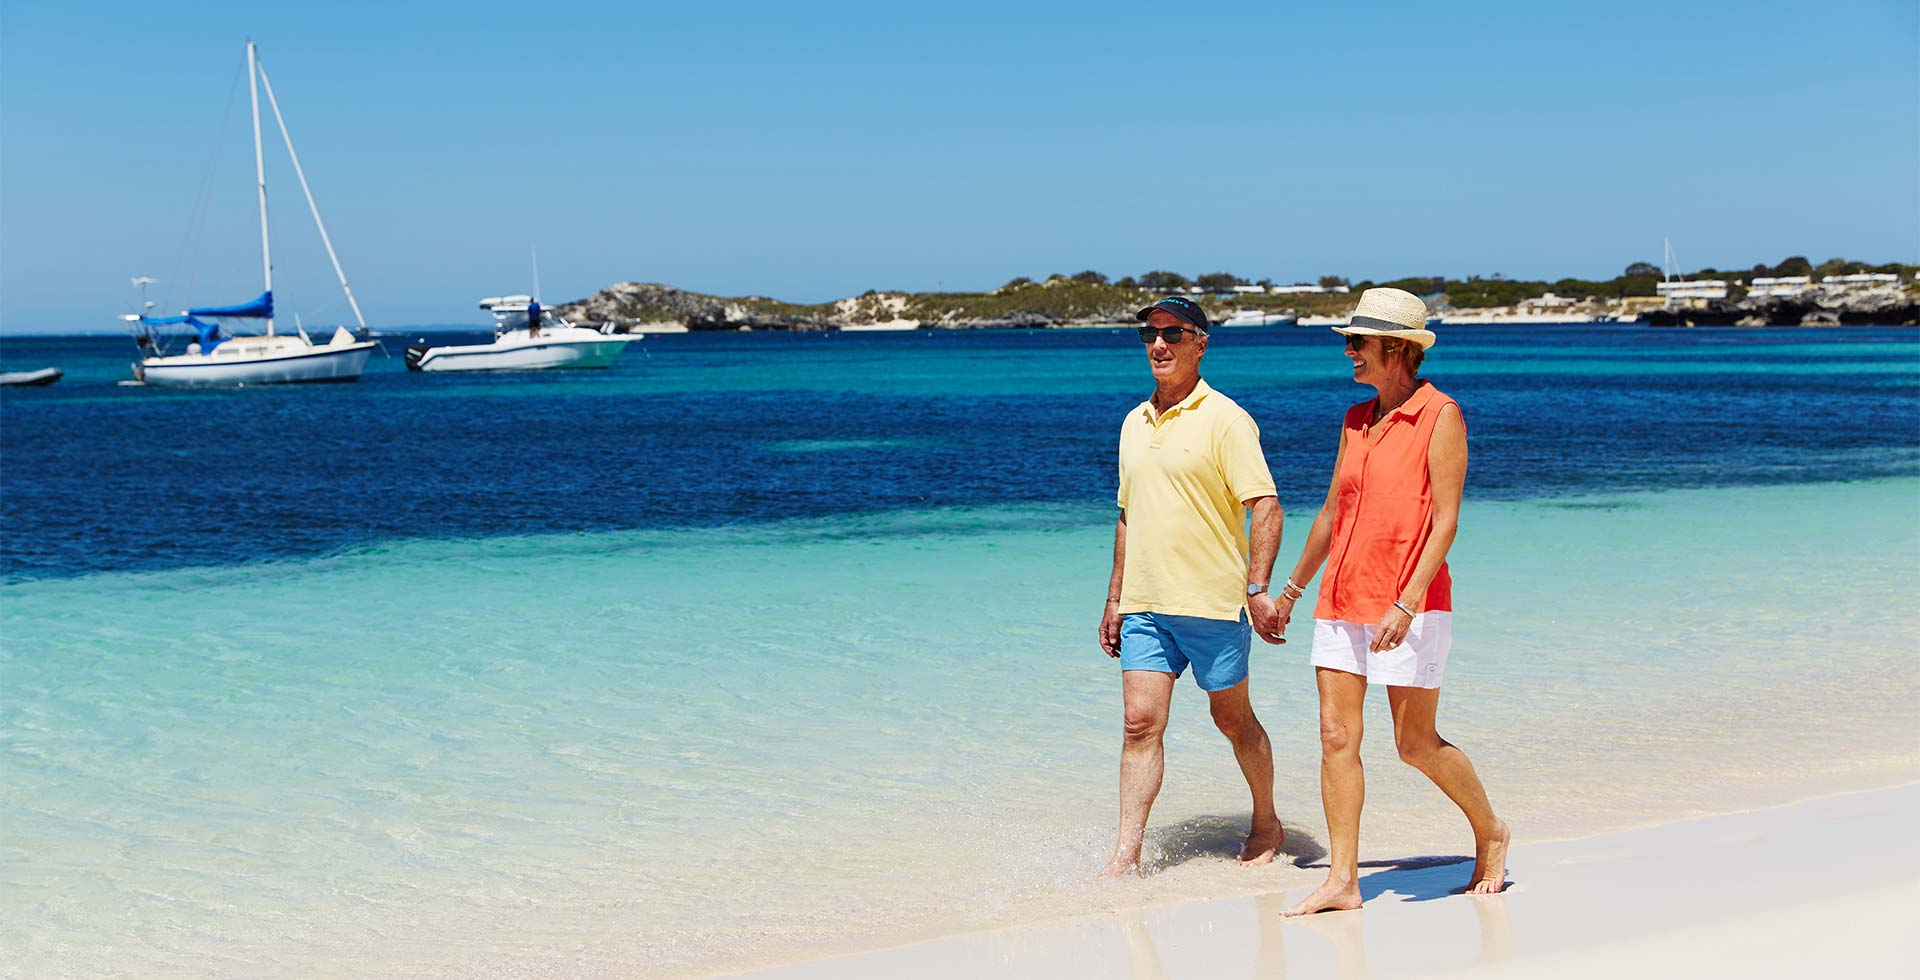 Stroll along the beach at Parakeet Bay in Rottnest Island